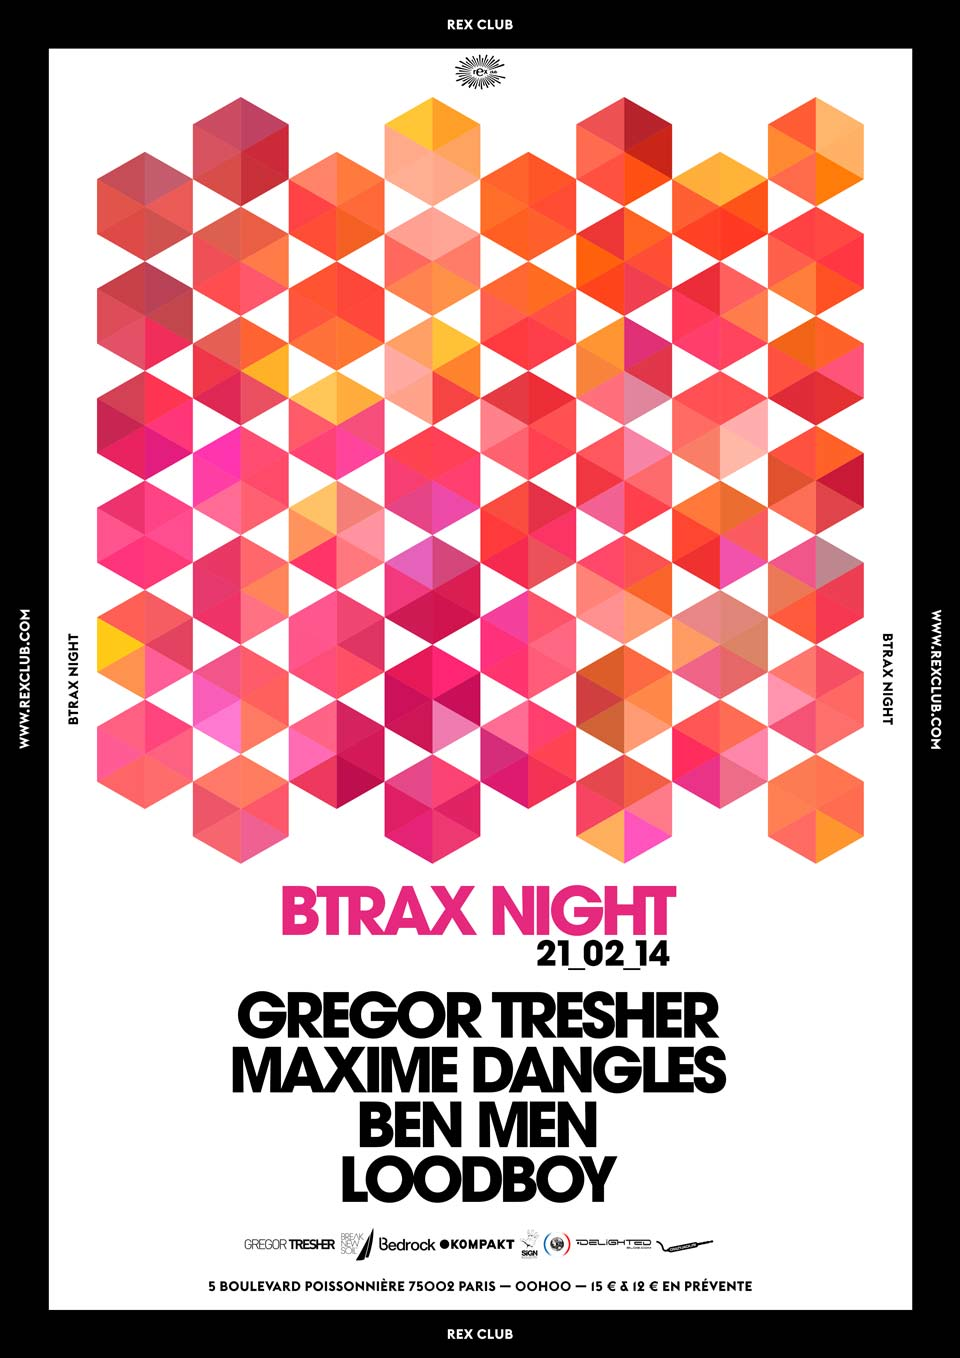 BTRAX night 21.02.14